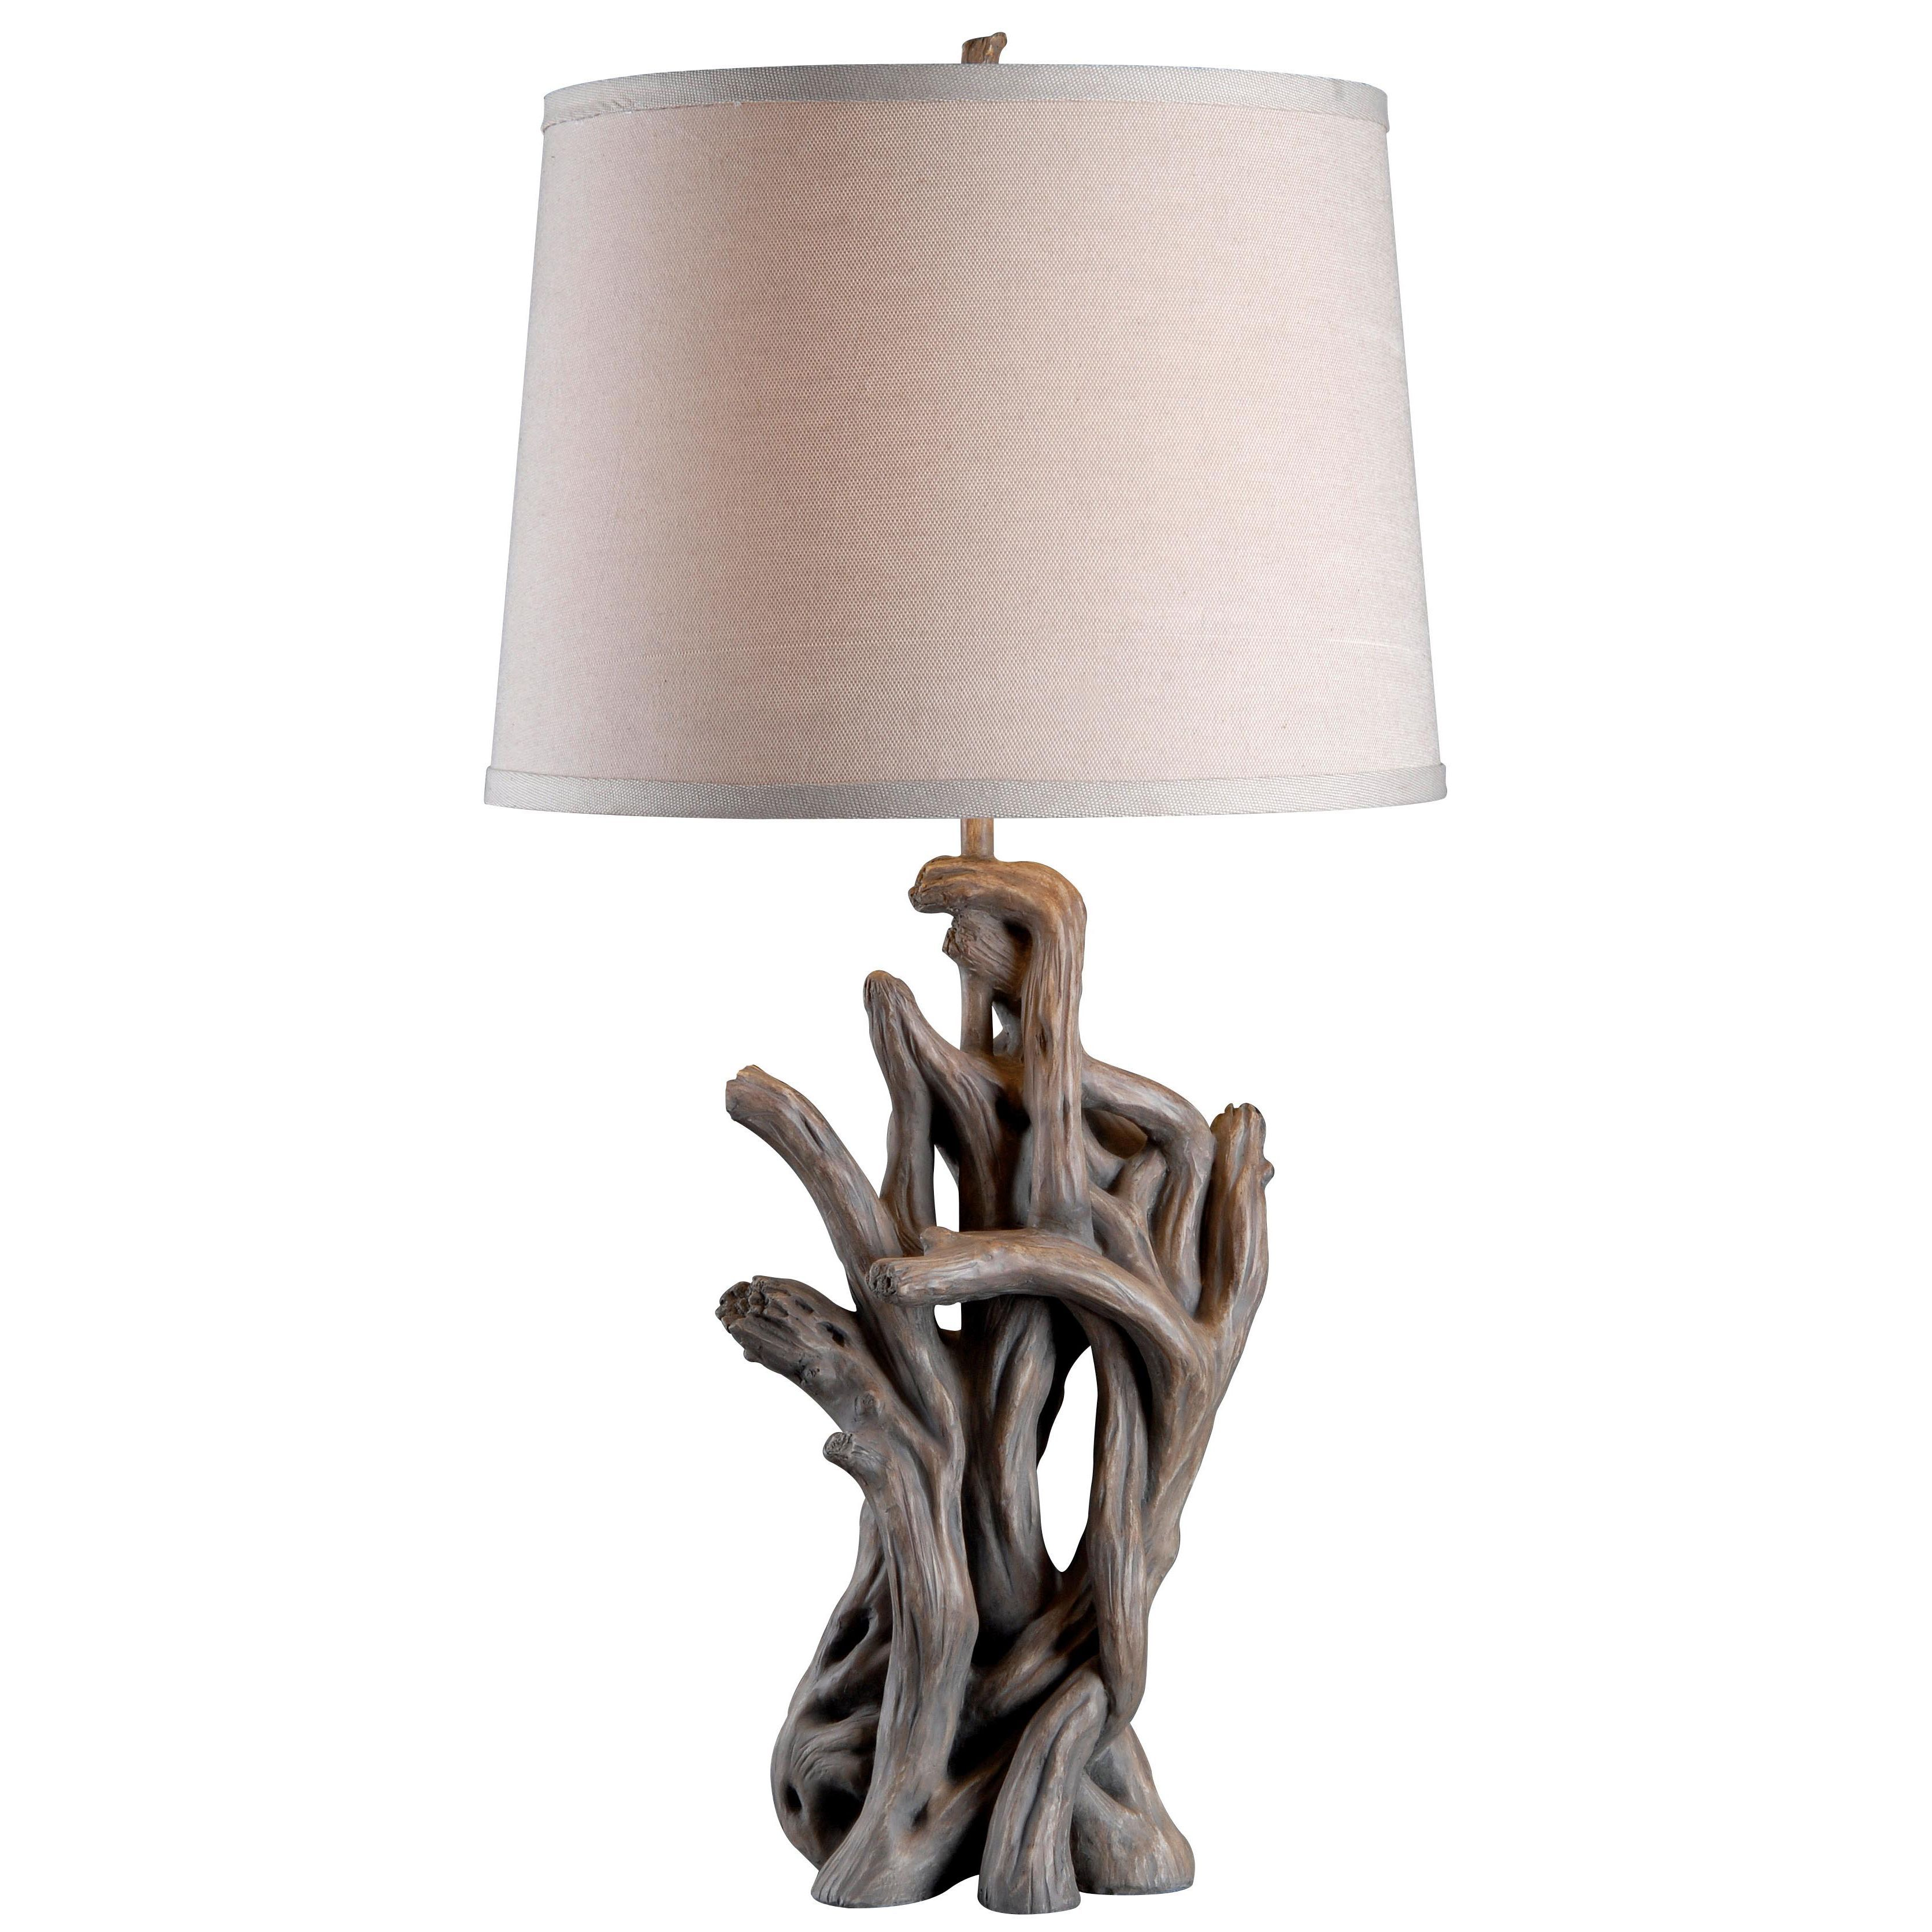 Alturas wood table lamp by design craft crafts great for Crafting wooden lamps